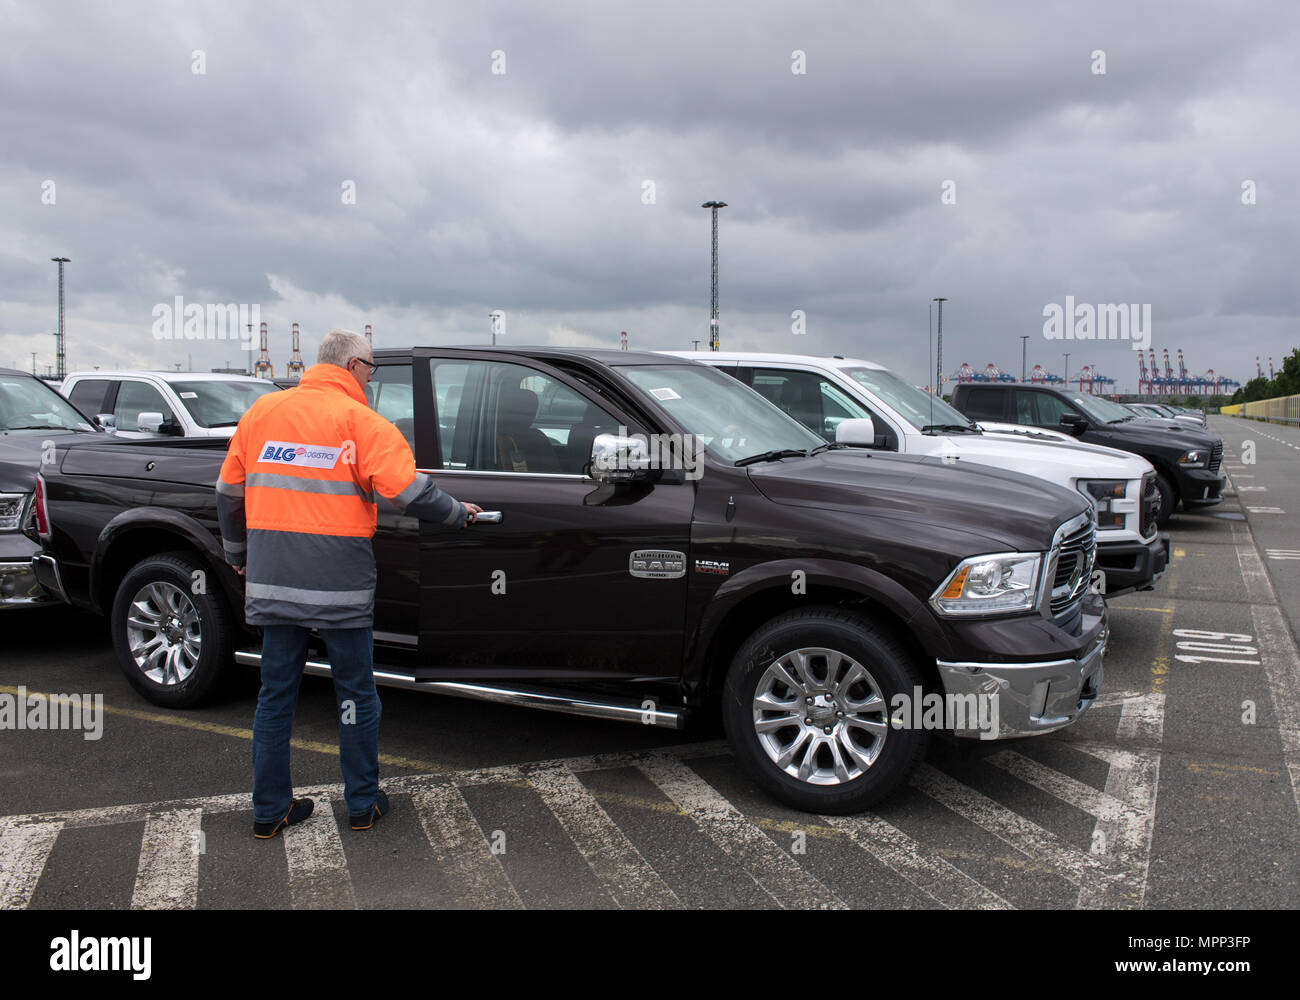 New Vehicles 2017 >> Bremerhaven Germany 12th June 2017 New Vehicles Of Us